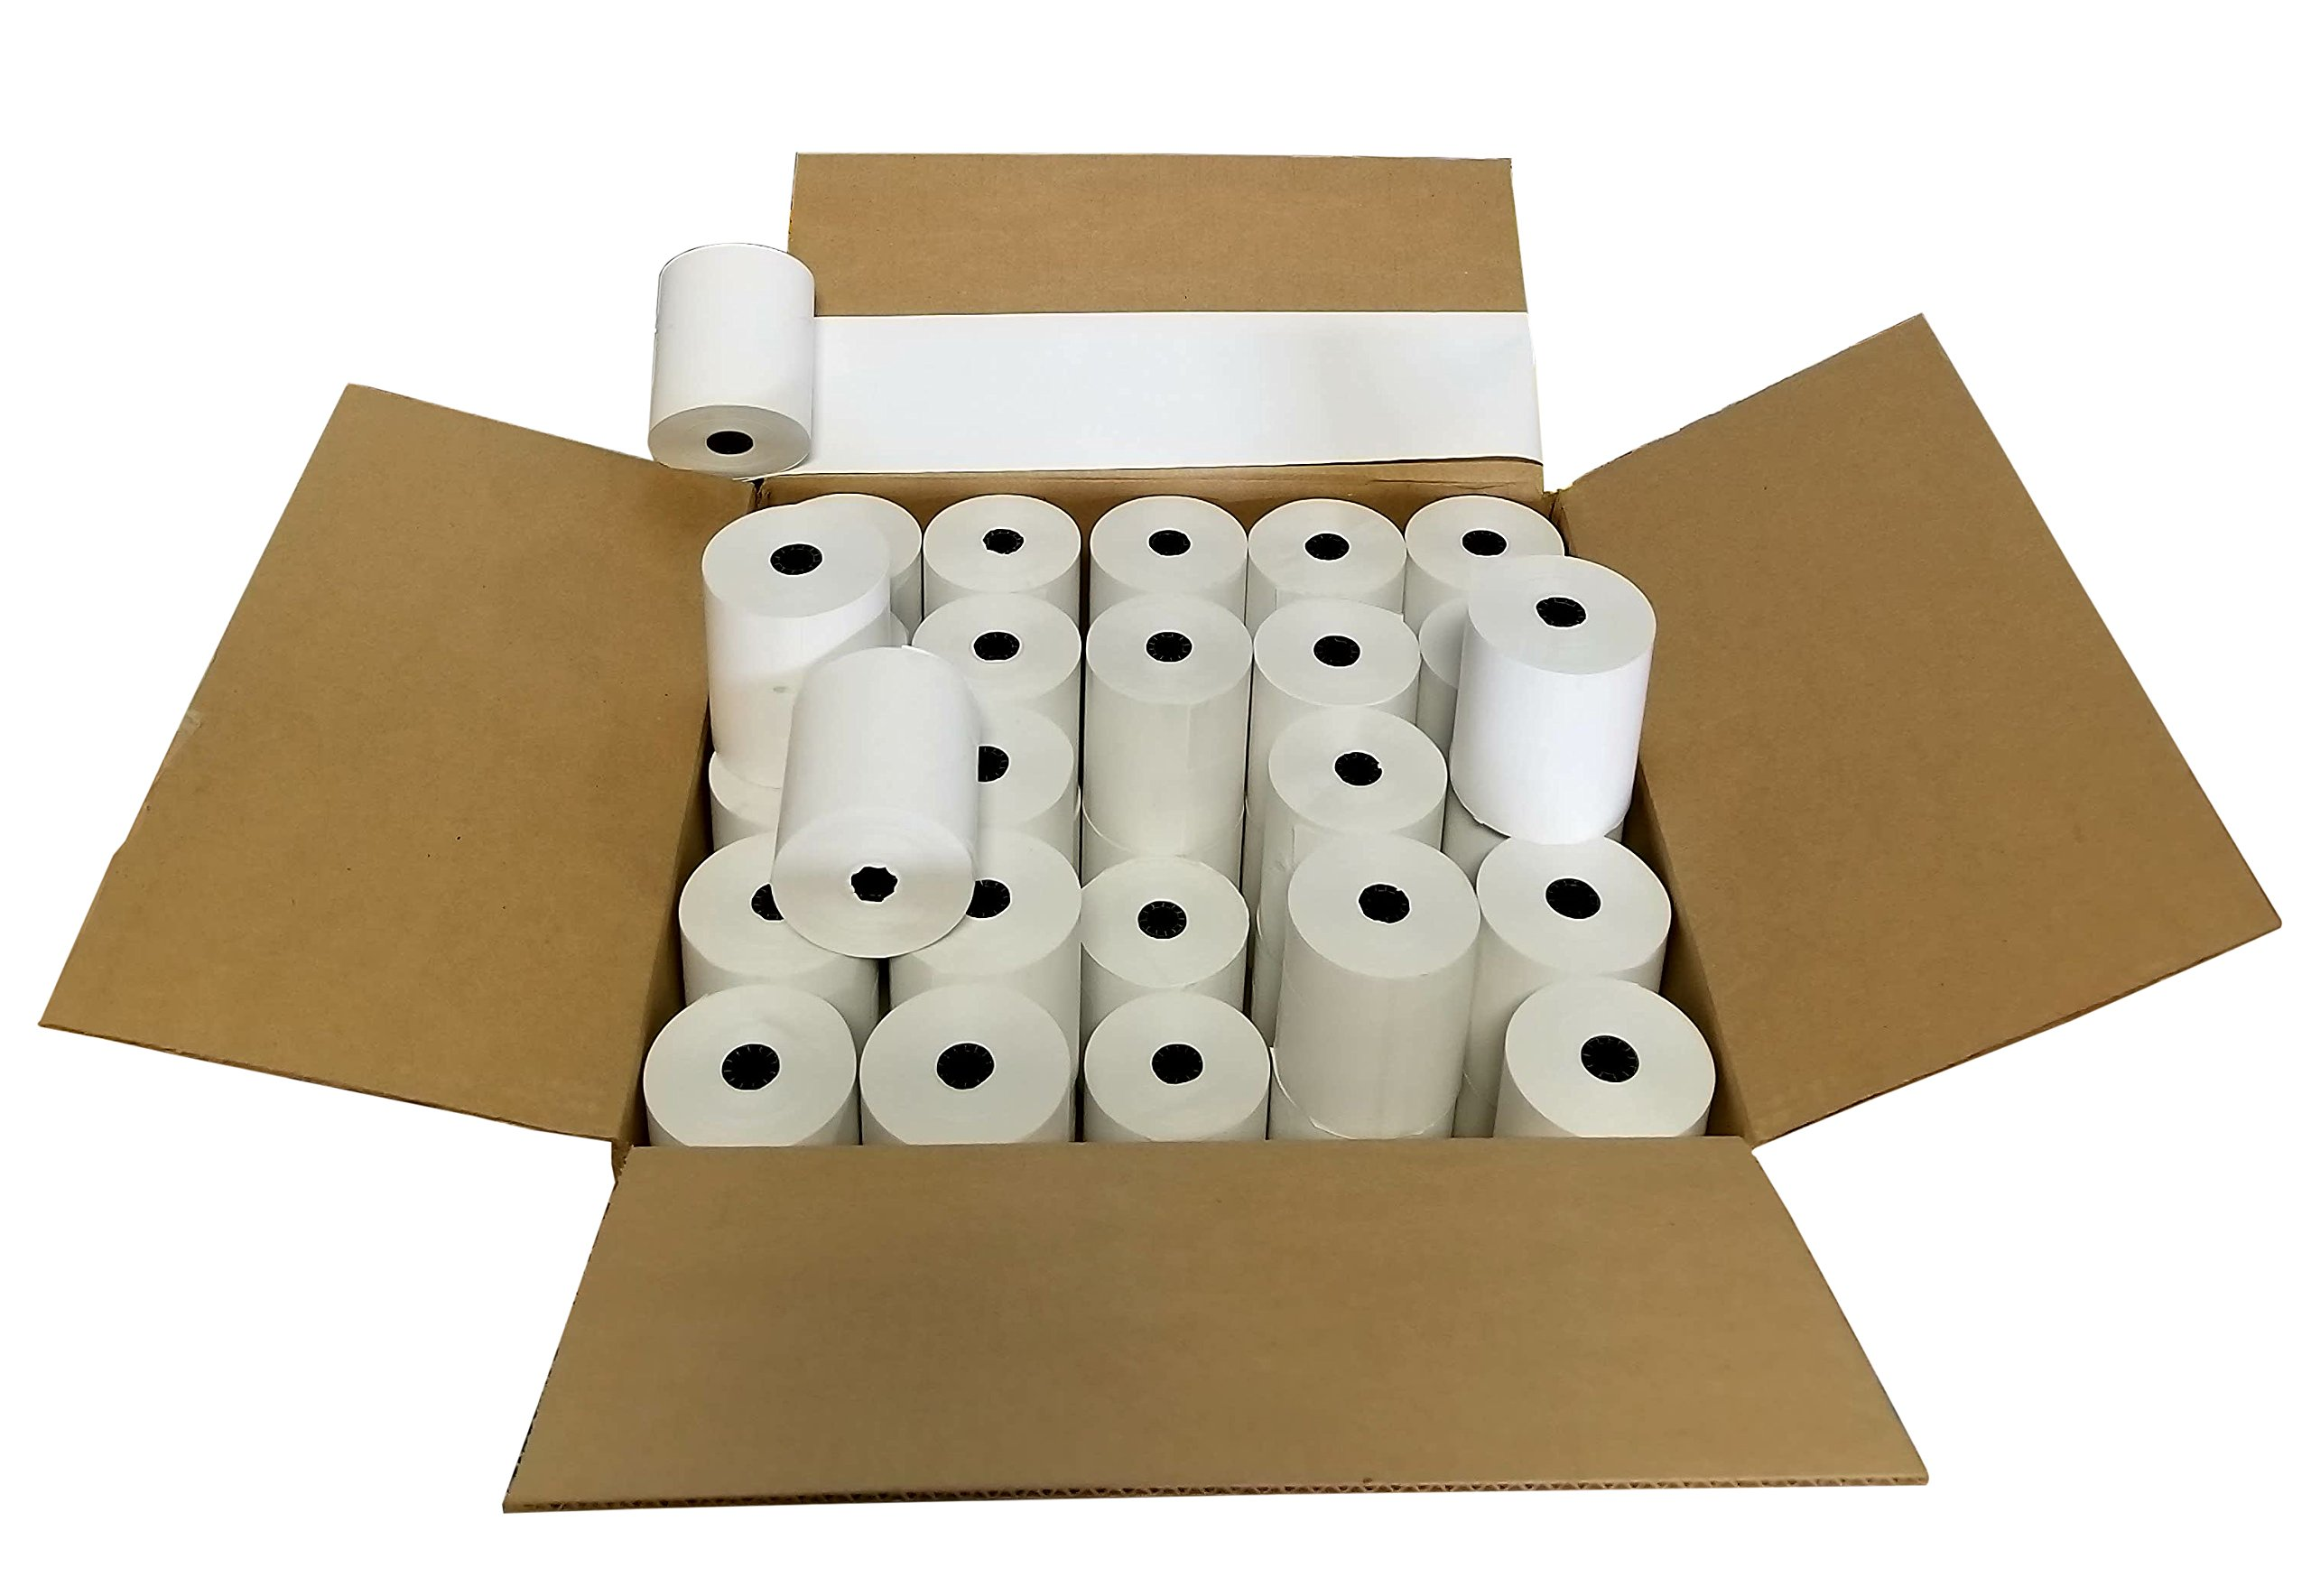 CLOVER PoS 3-1/8'' x 230' THERMAL RECEIPT PAPER - 50 NEW ROLLS by WRB SUPPLY